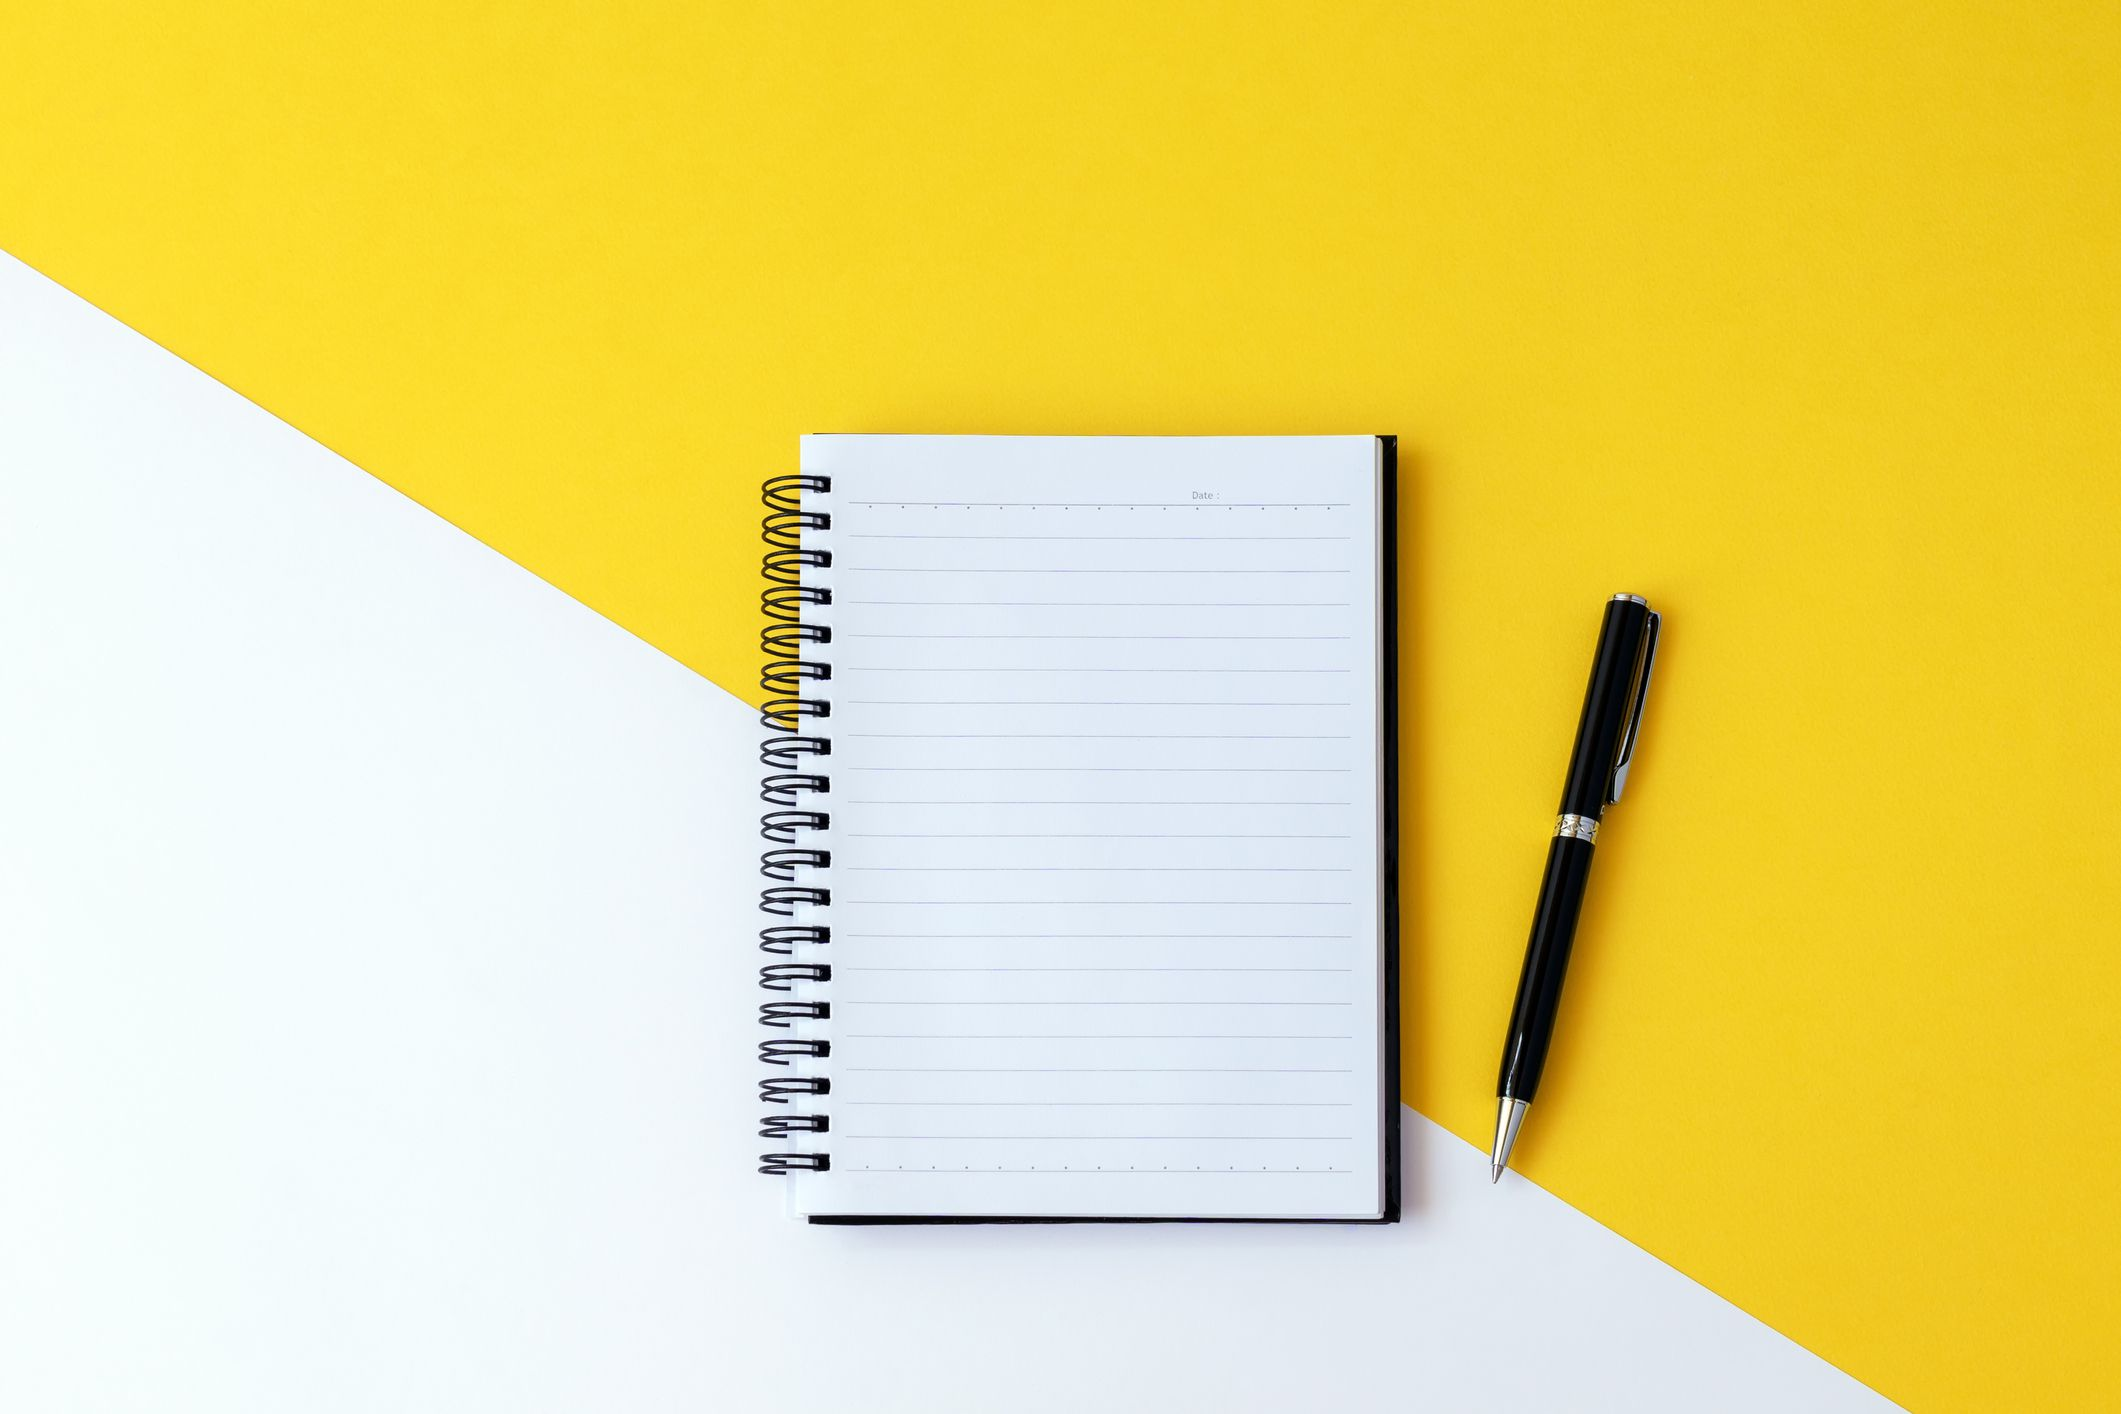 Astonishing Facts of Spiral-bound Journal Notebook